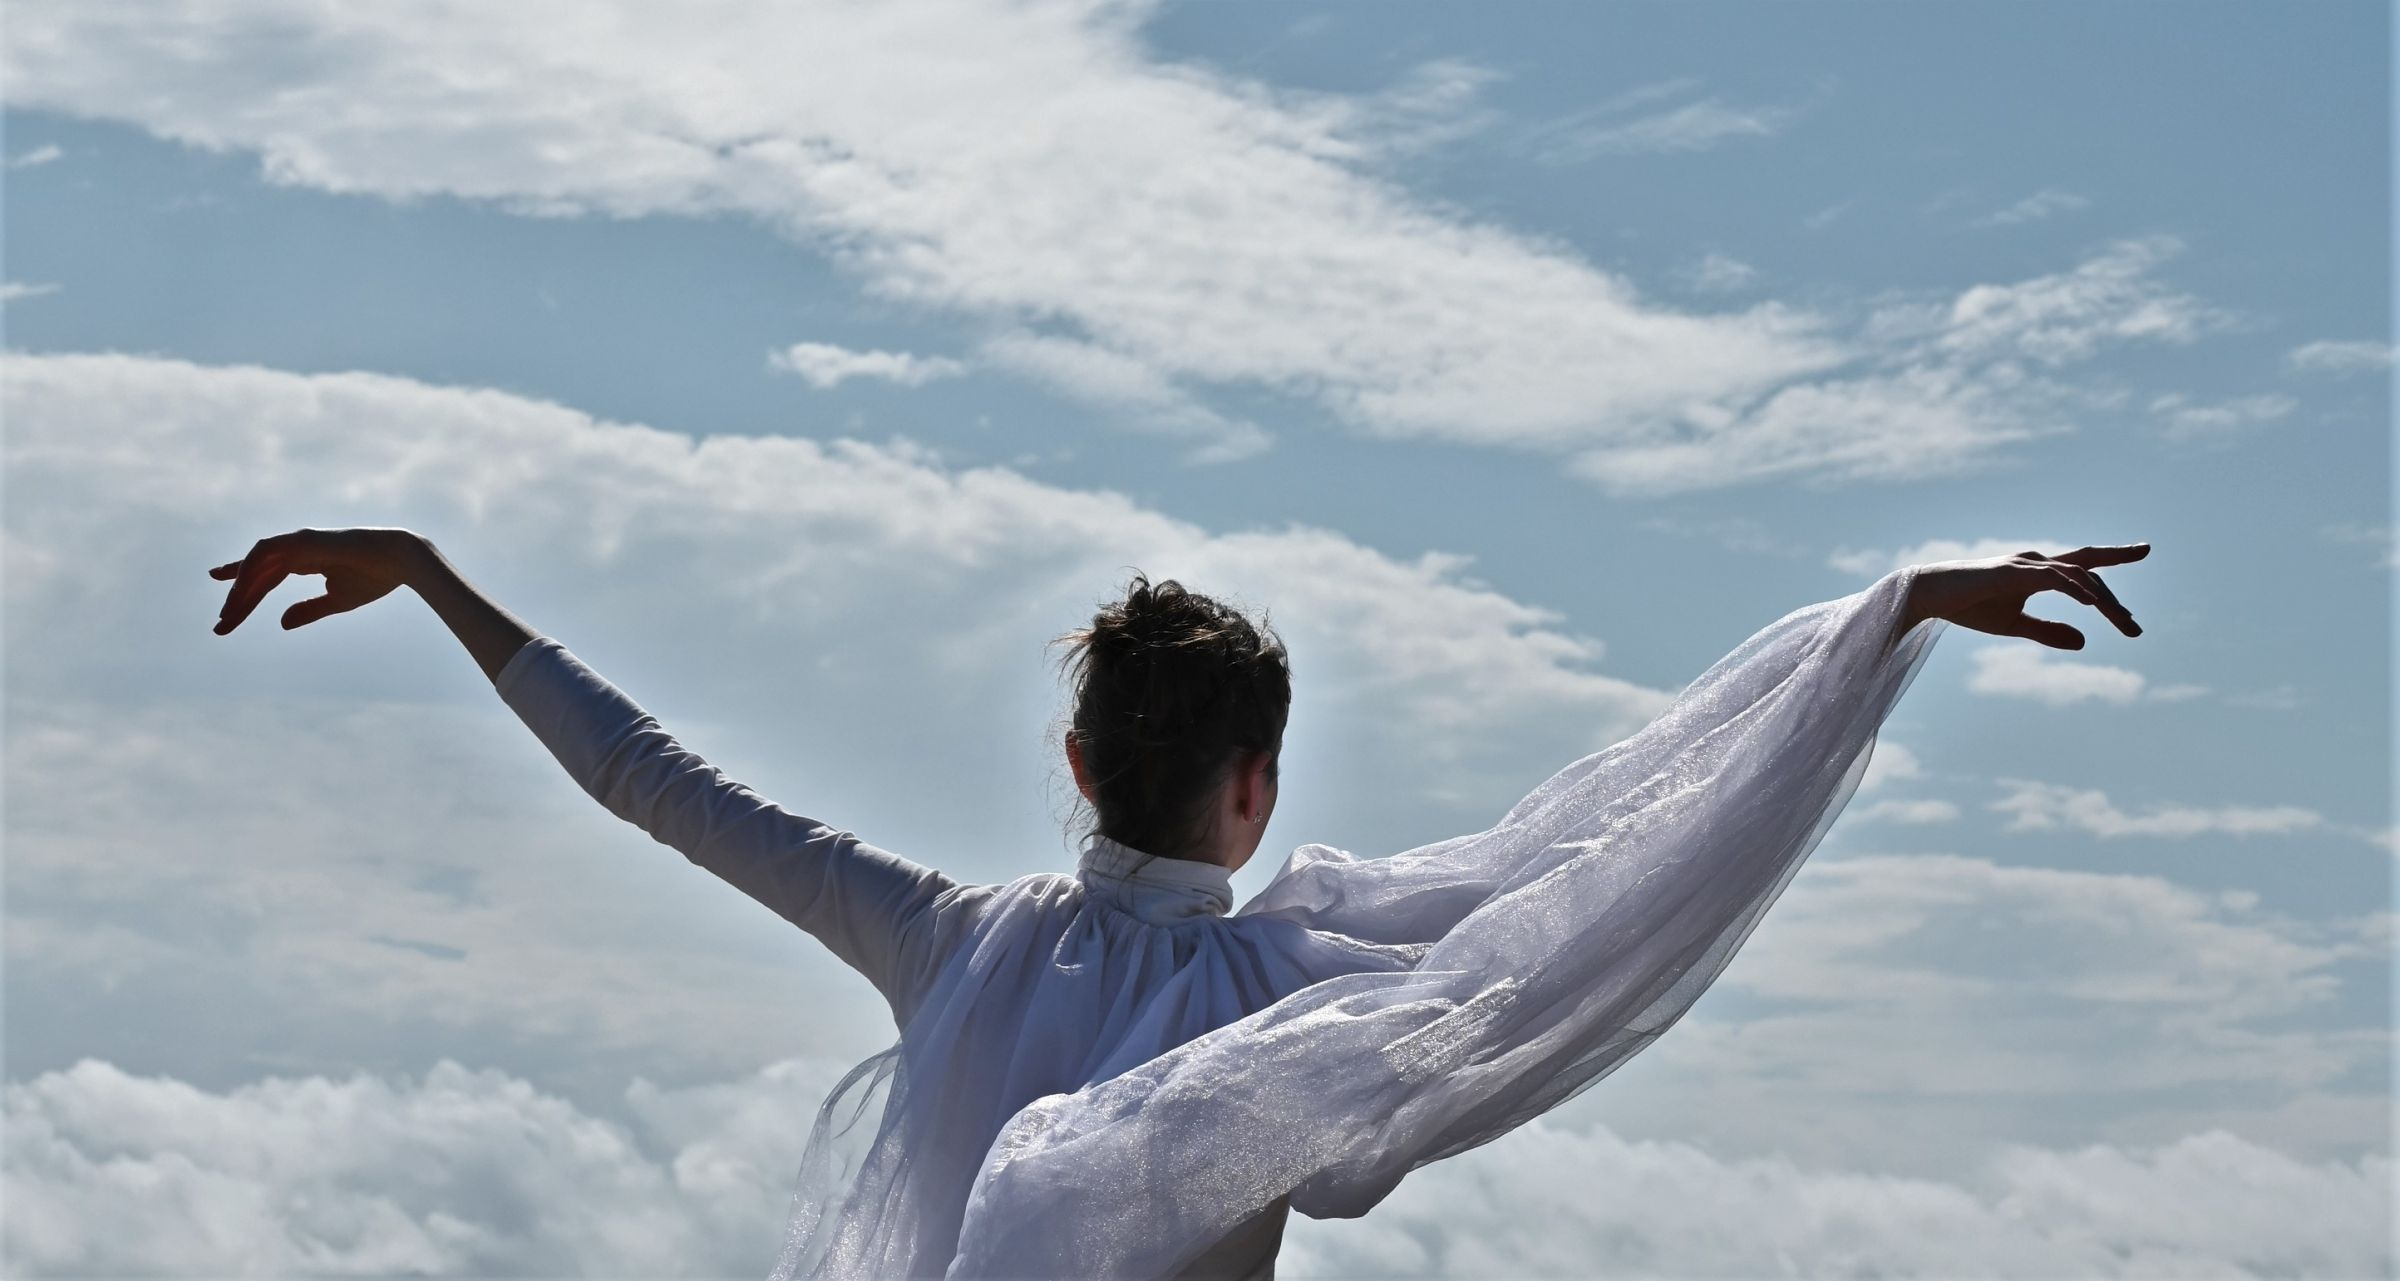 A woman facing the sky with arms outstretched